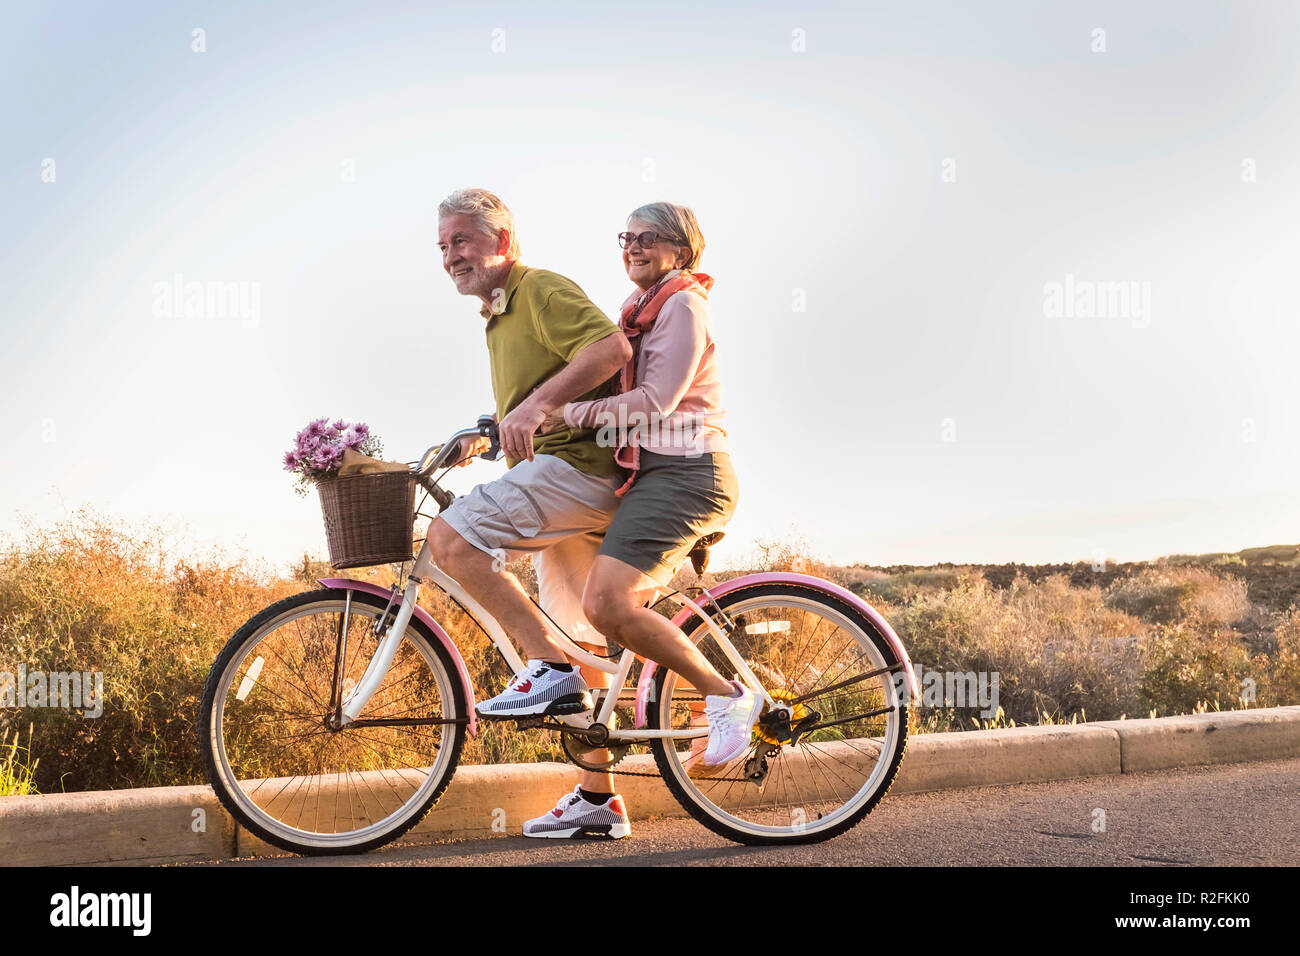 two senior man and woman together on  an old bicycle outdoor activity. happyness and freedom from work concept. sunlight and smiles. - Stock Image